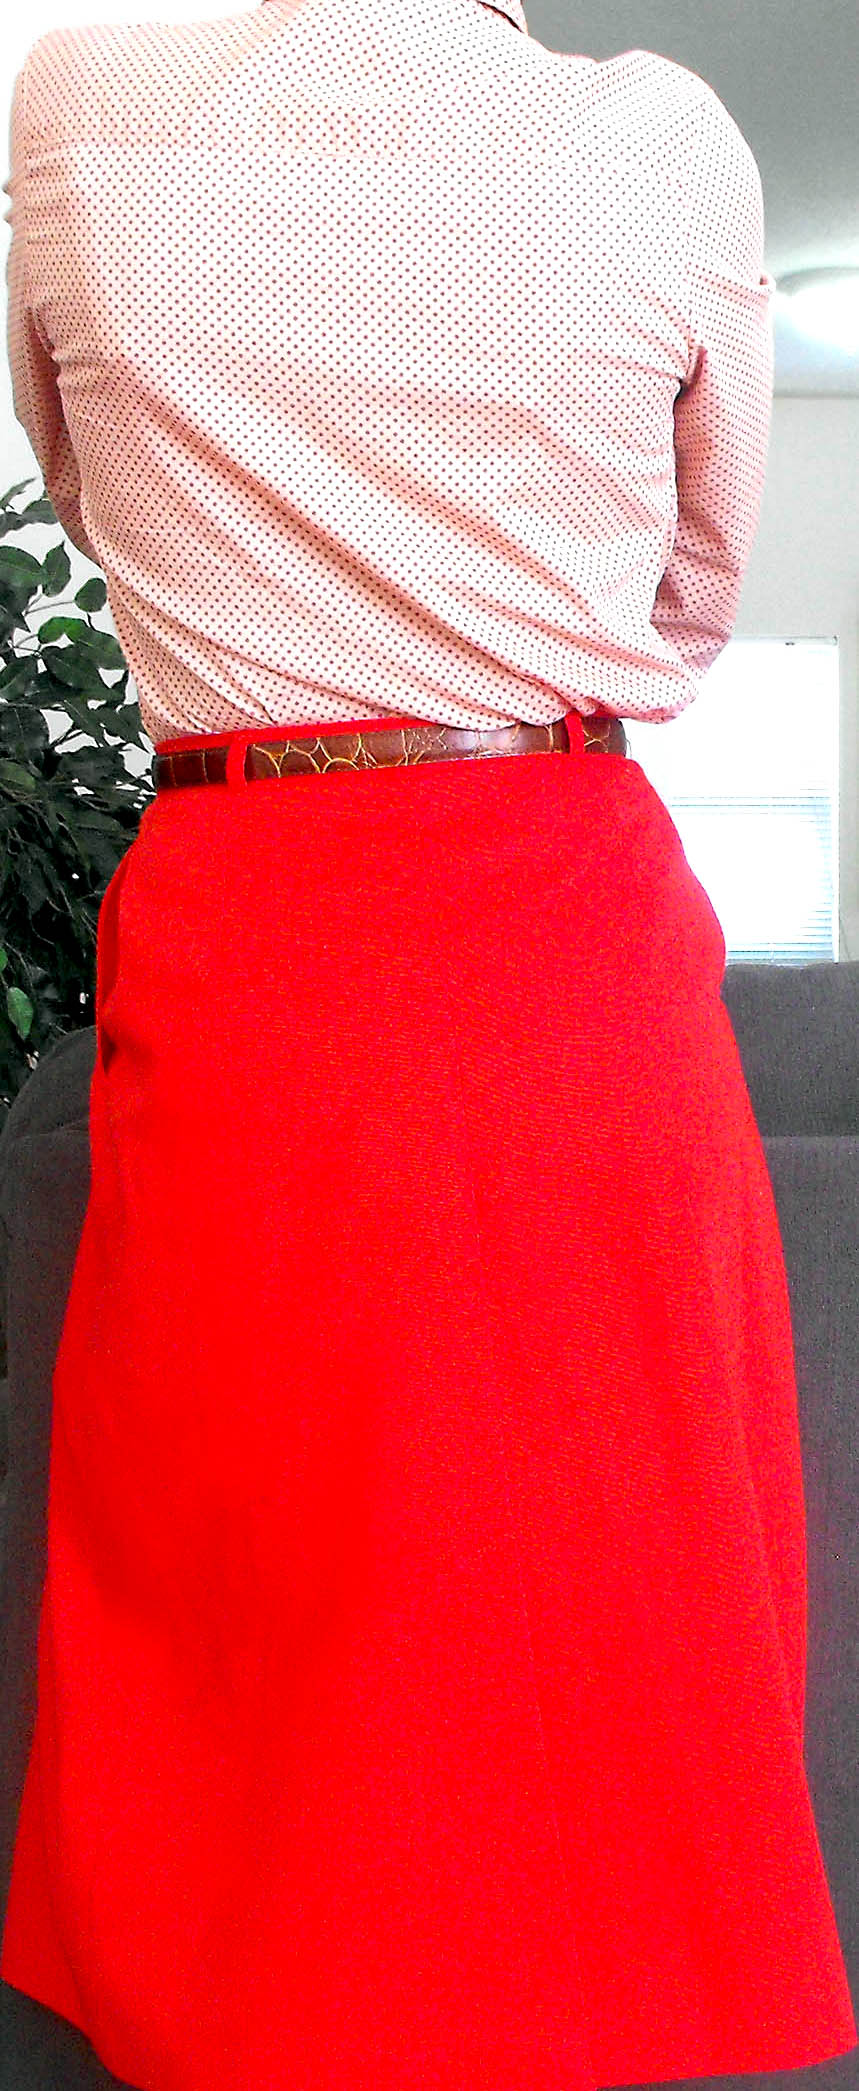 pink polka dot button collar long sleeve bloue red skirt 4